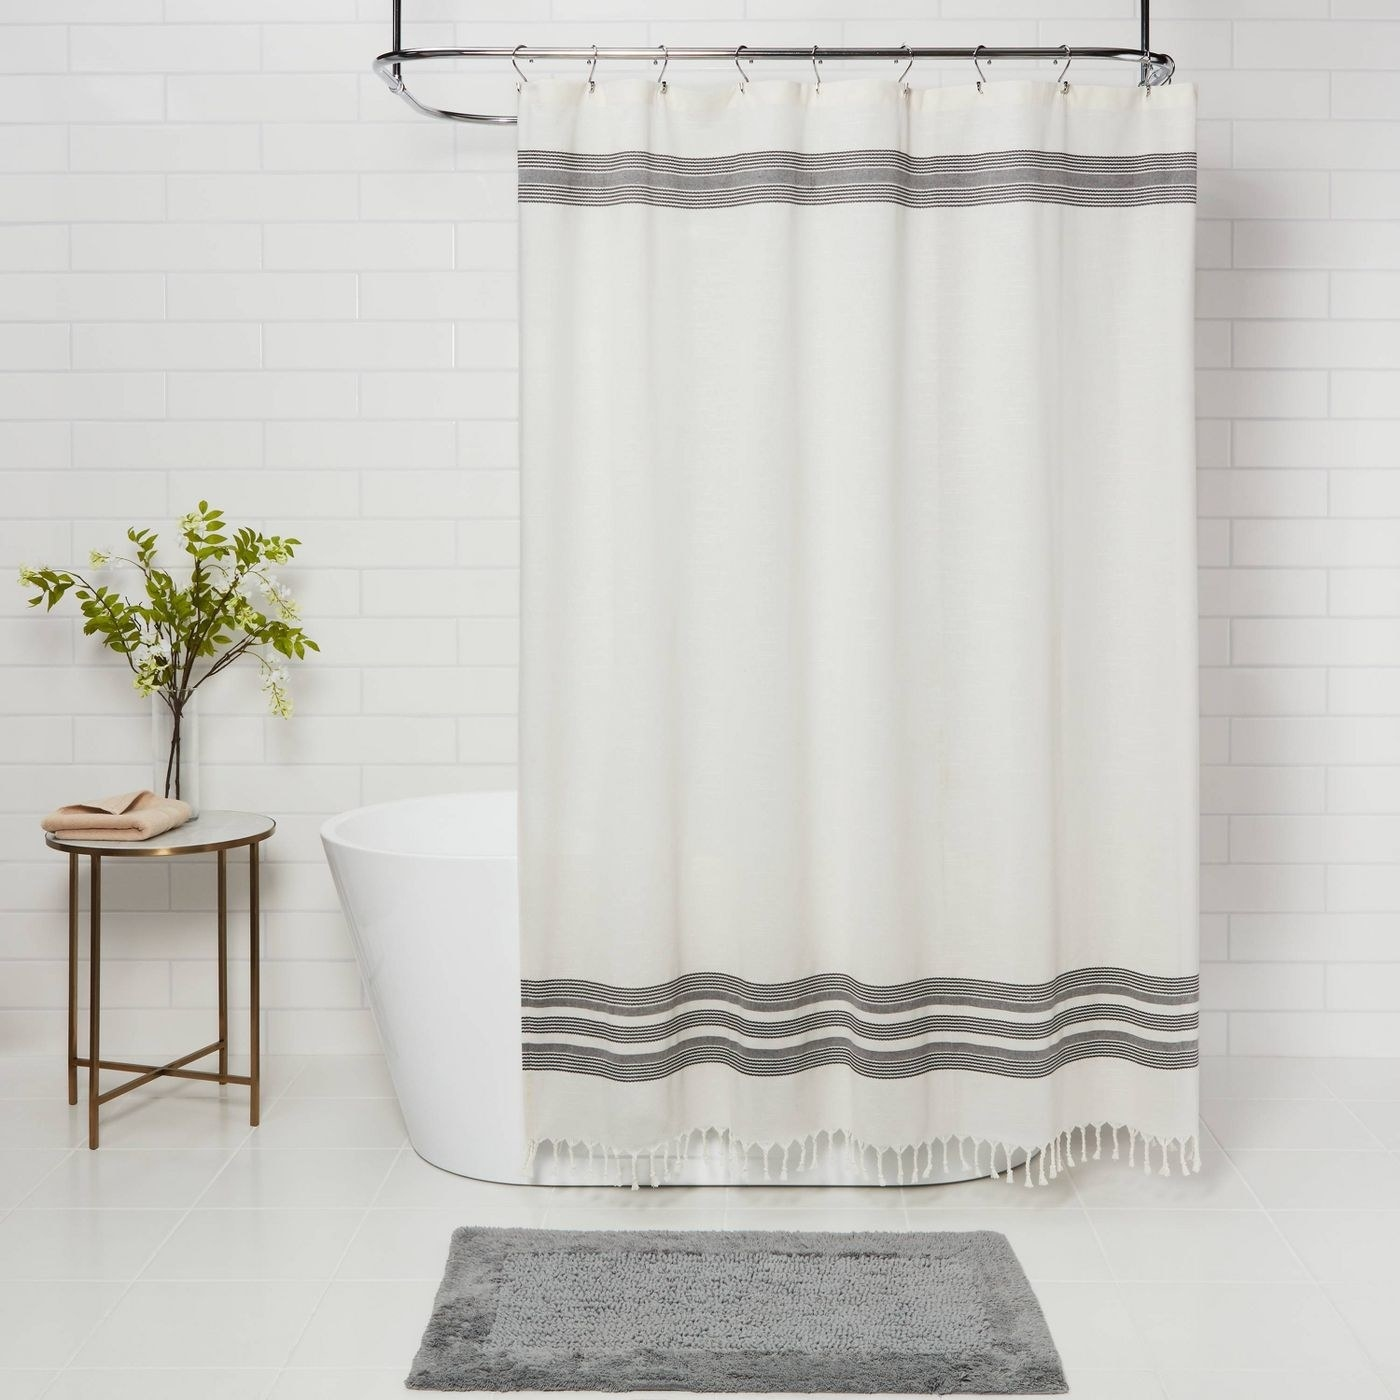 White shower curtain with dark grey stripes on the top and bottom and fringe along the bottom